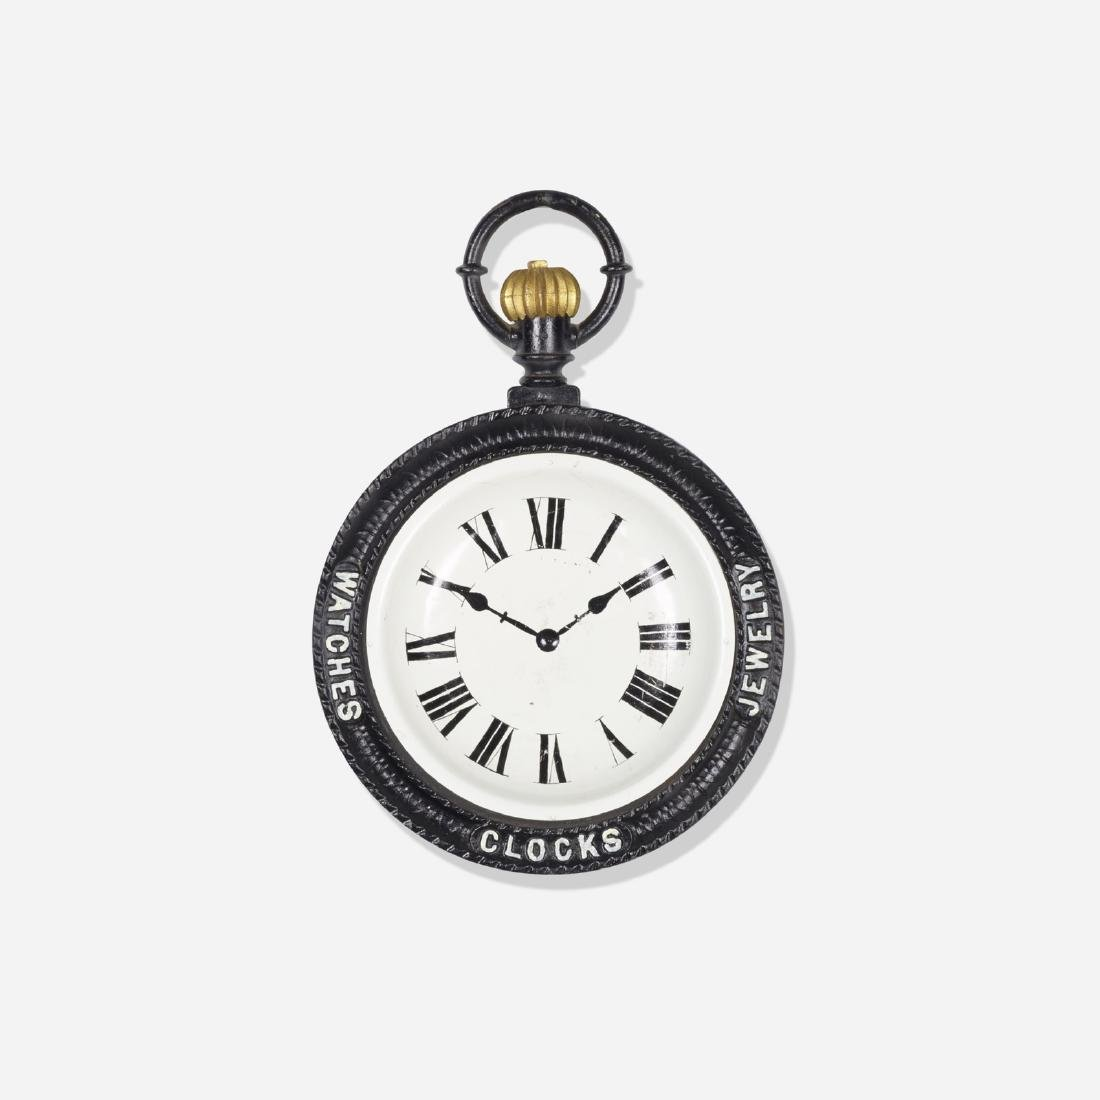 American, pocket watch trade sign